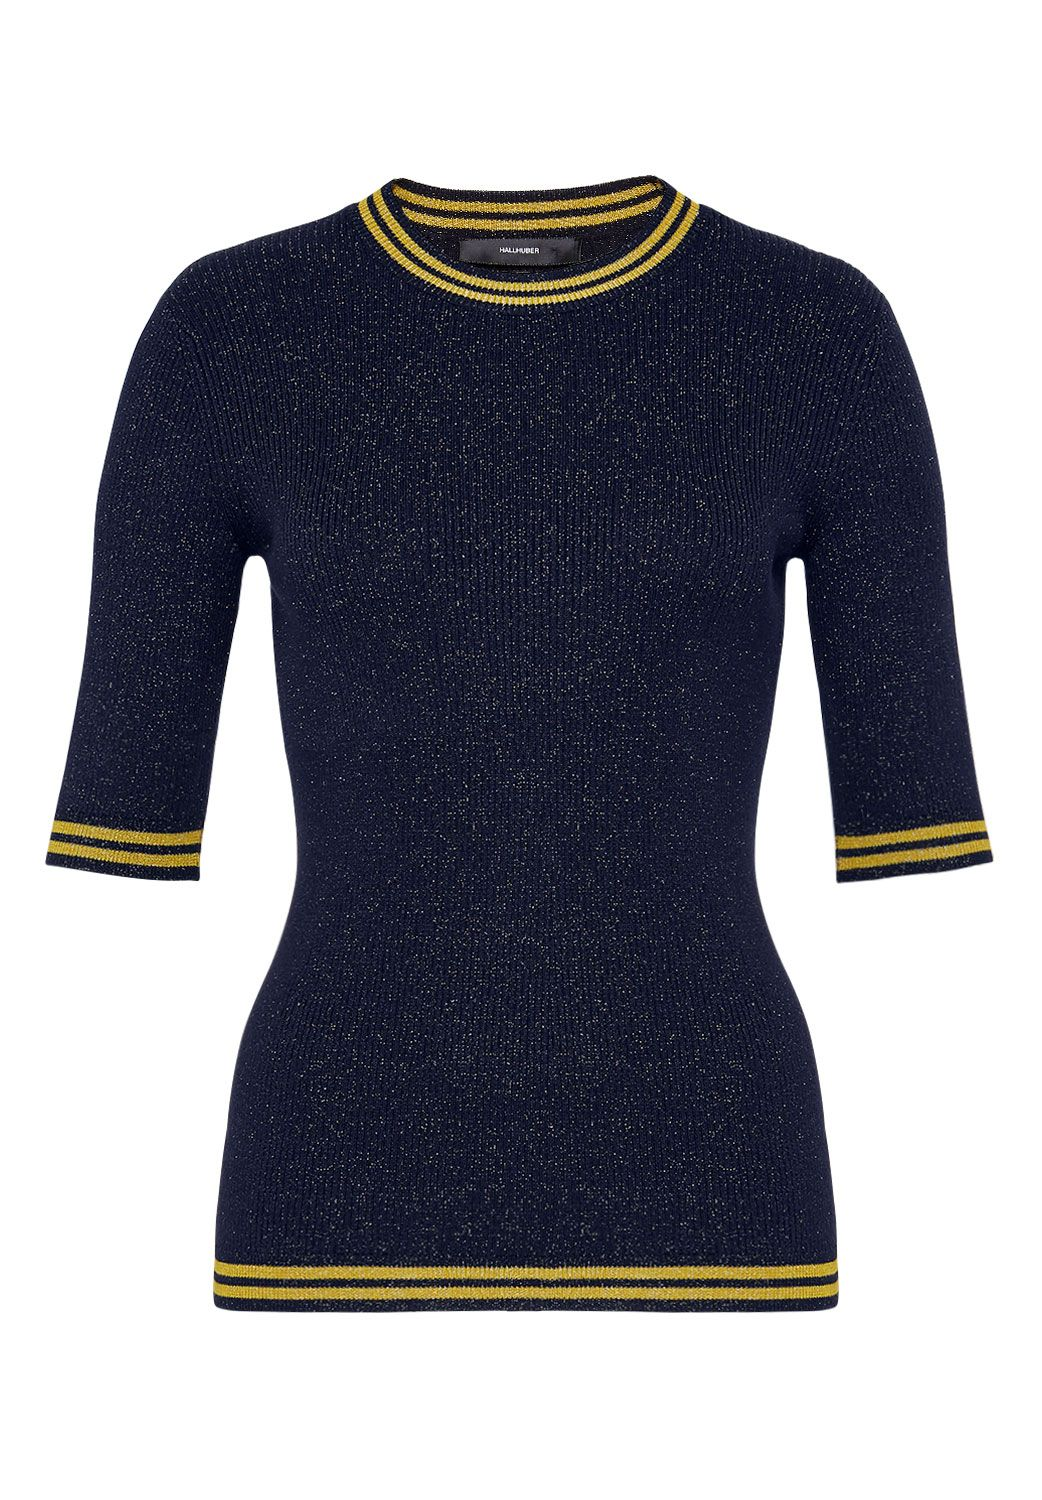 Hallhuber Hallhuber Lurex jumper with striped cuffs, Blue